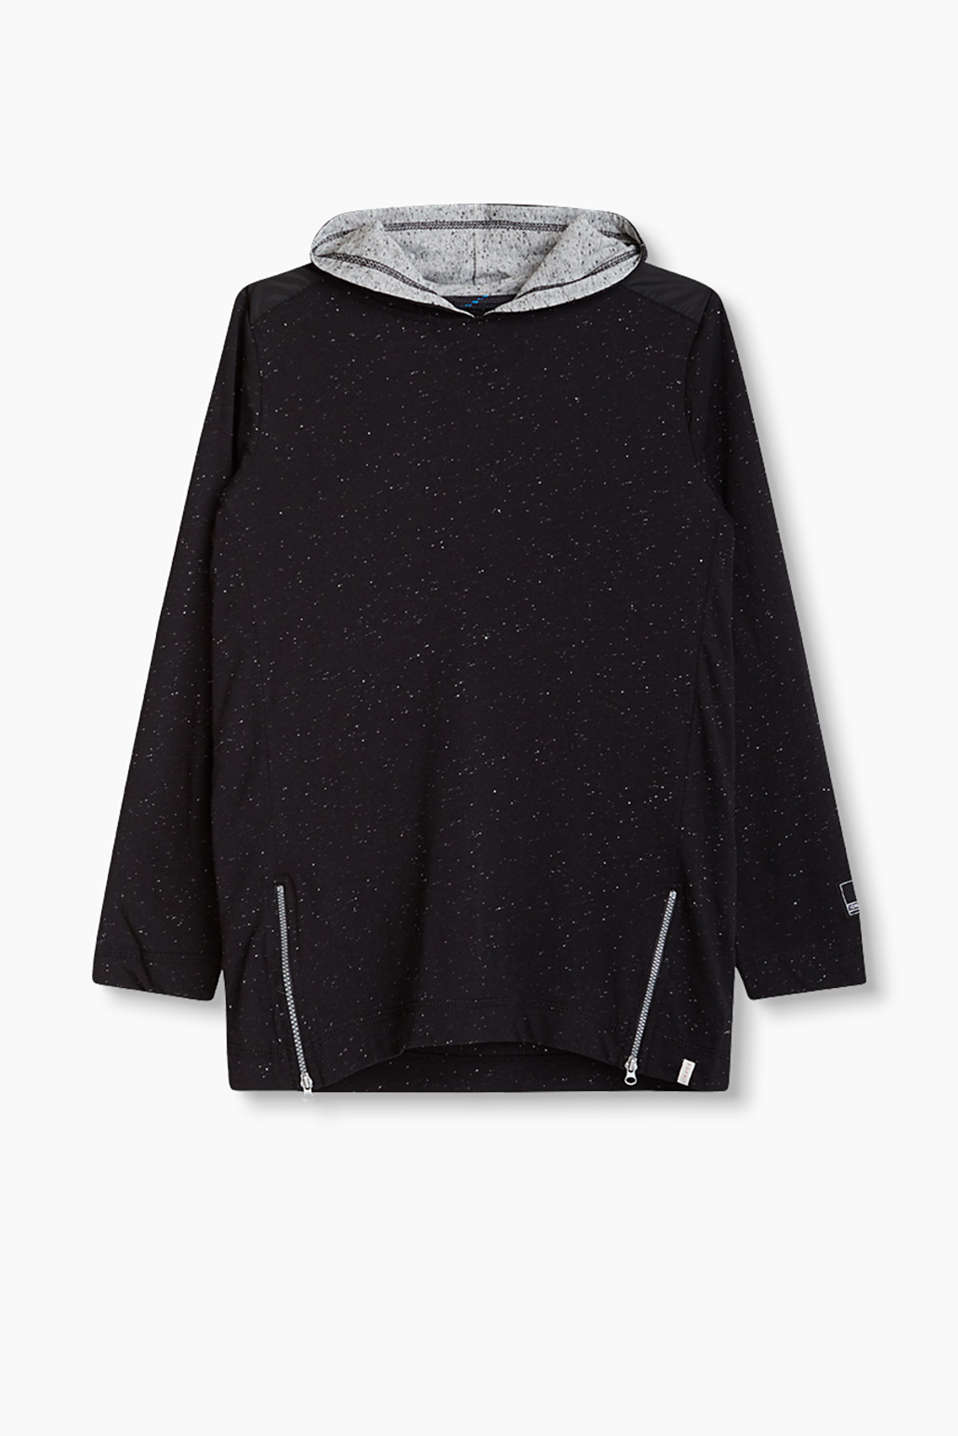 Jersey hoodie with dimples, nylon details and hem zips